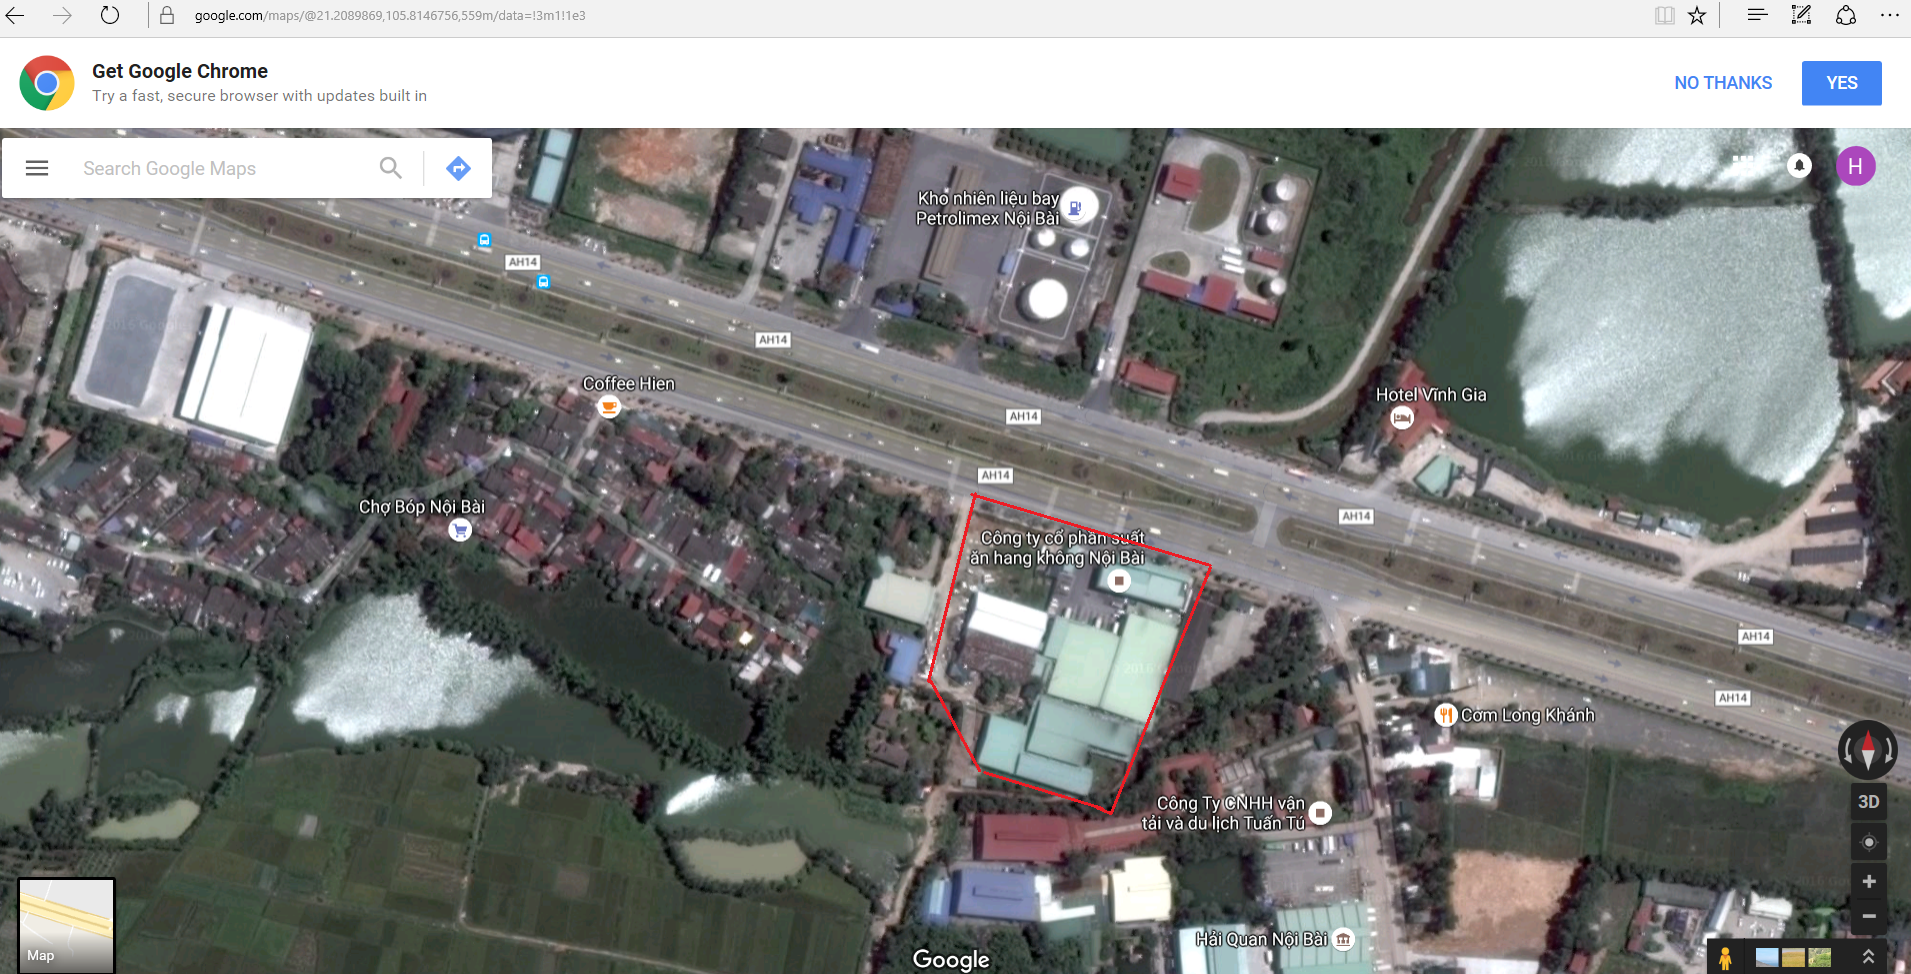 Mapping google map into Infraworks - Autodesk Community